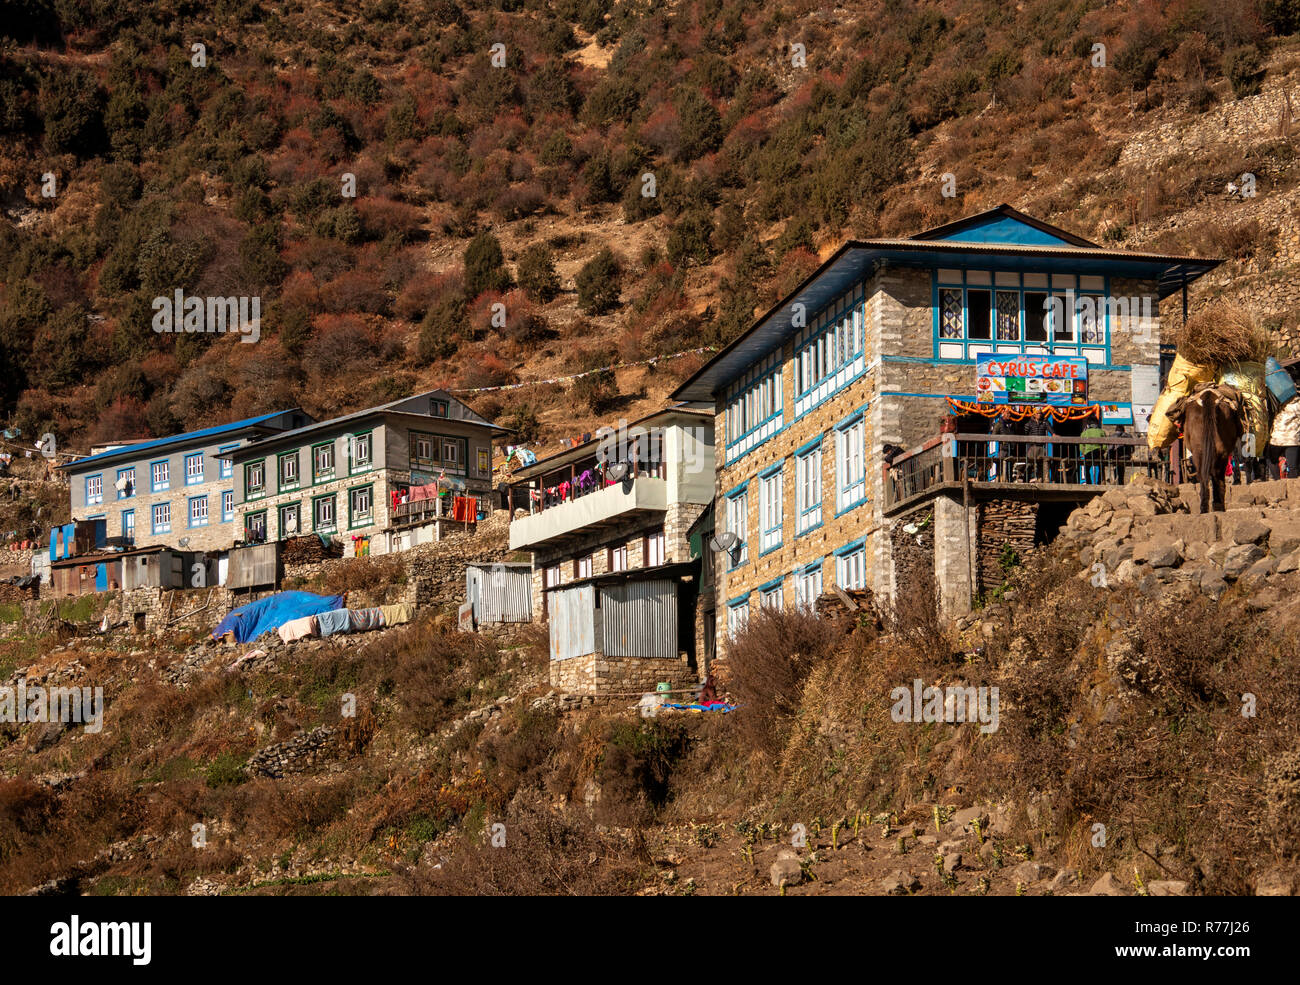 Nepal, Namche Bazar, Cyrus Café and first buildings at southern edge of Namche Baxaar - Stock Image